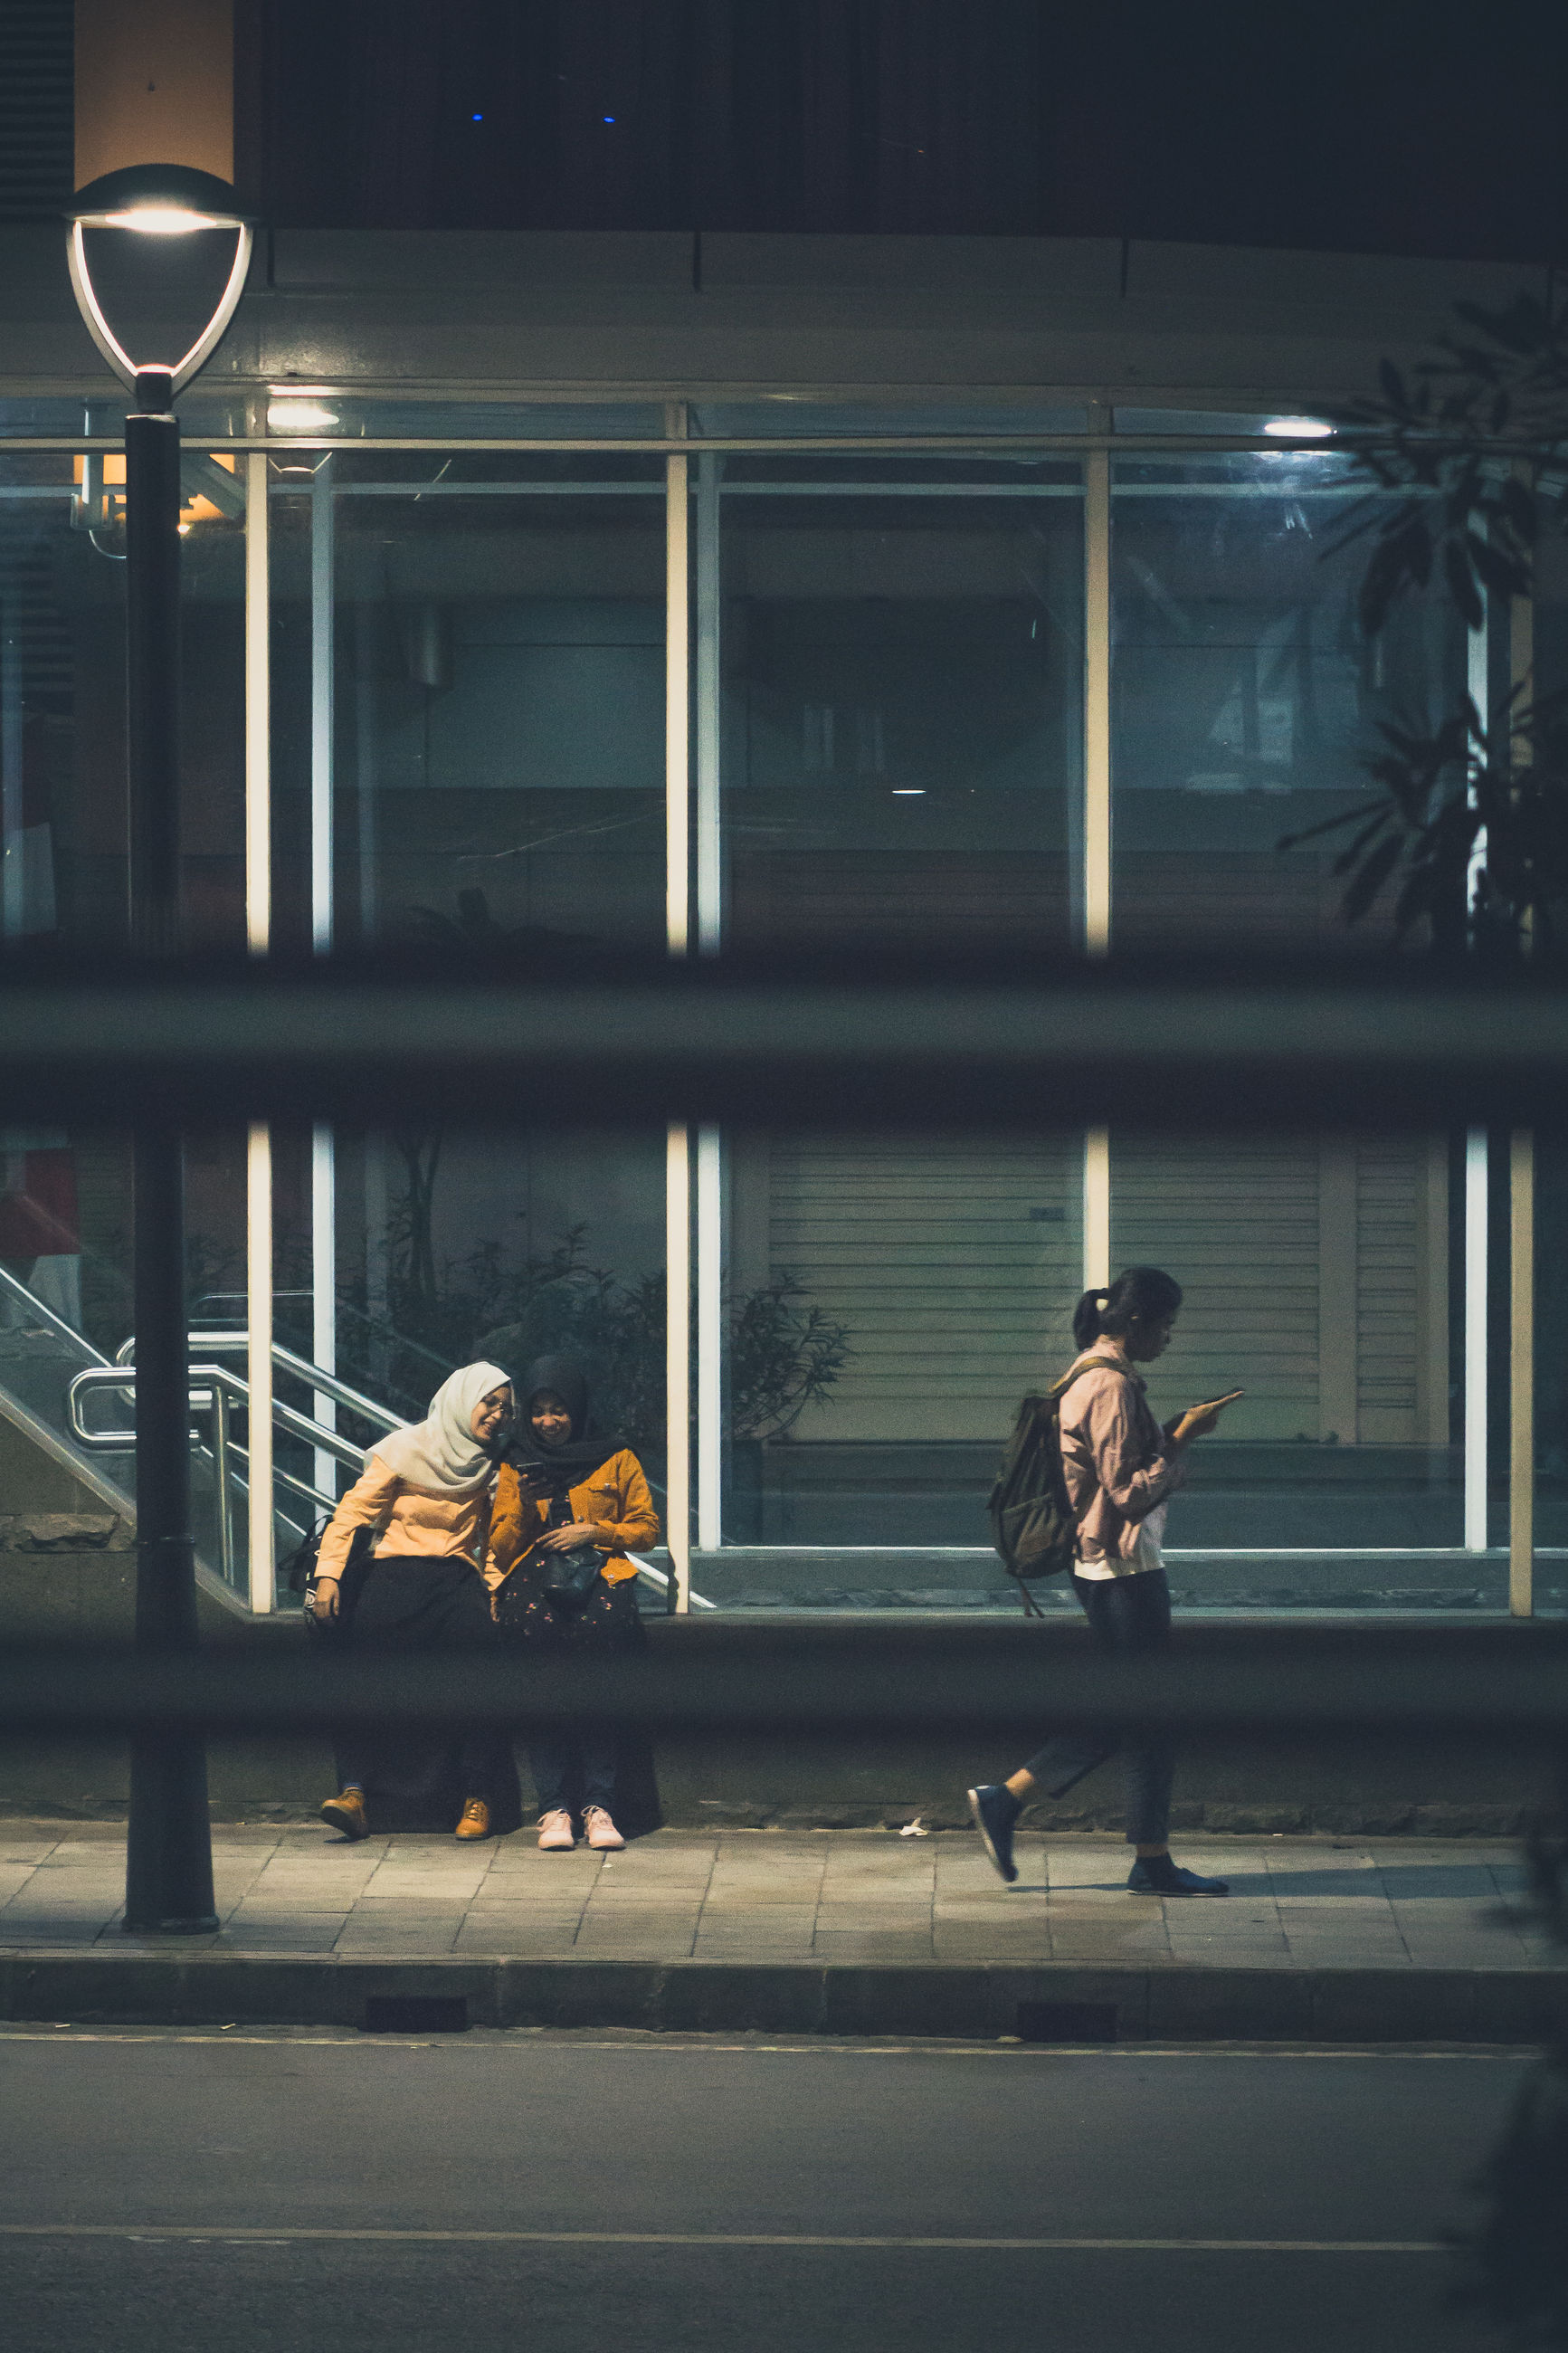 city, architecture, street, night, real people, group of people, women, built structure, illuminated, building exterior, people, lifestyles, window, transportation, full length, leisure activity, glass - material, outdoors, men, adult